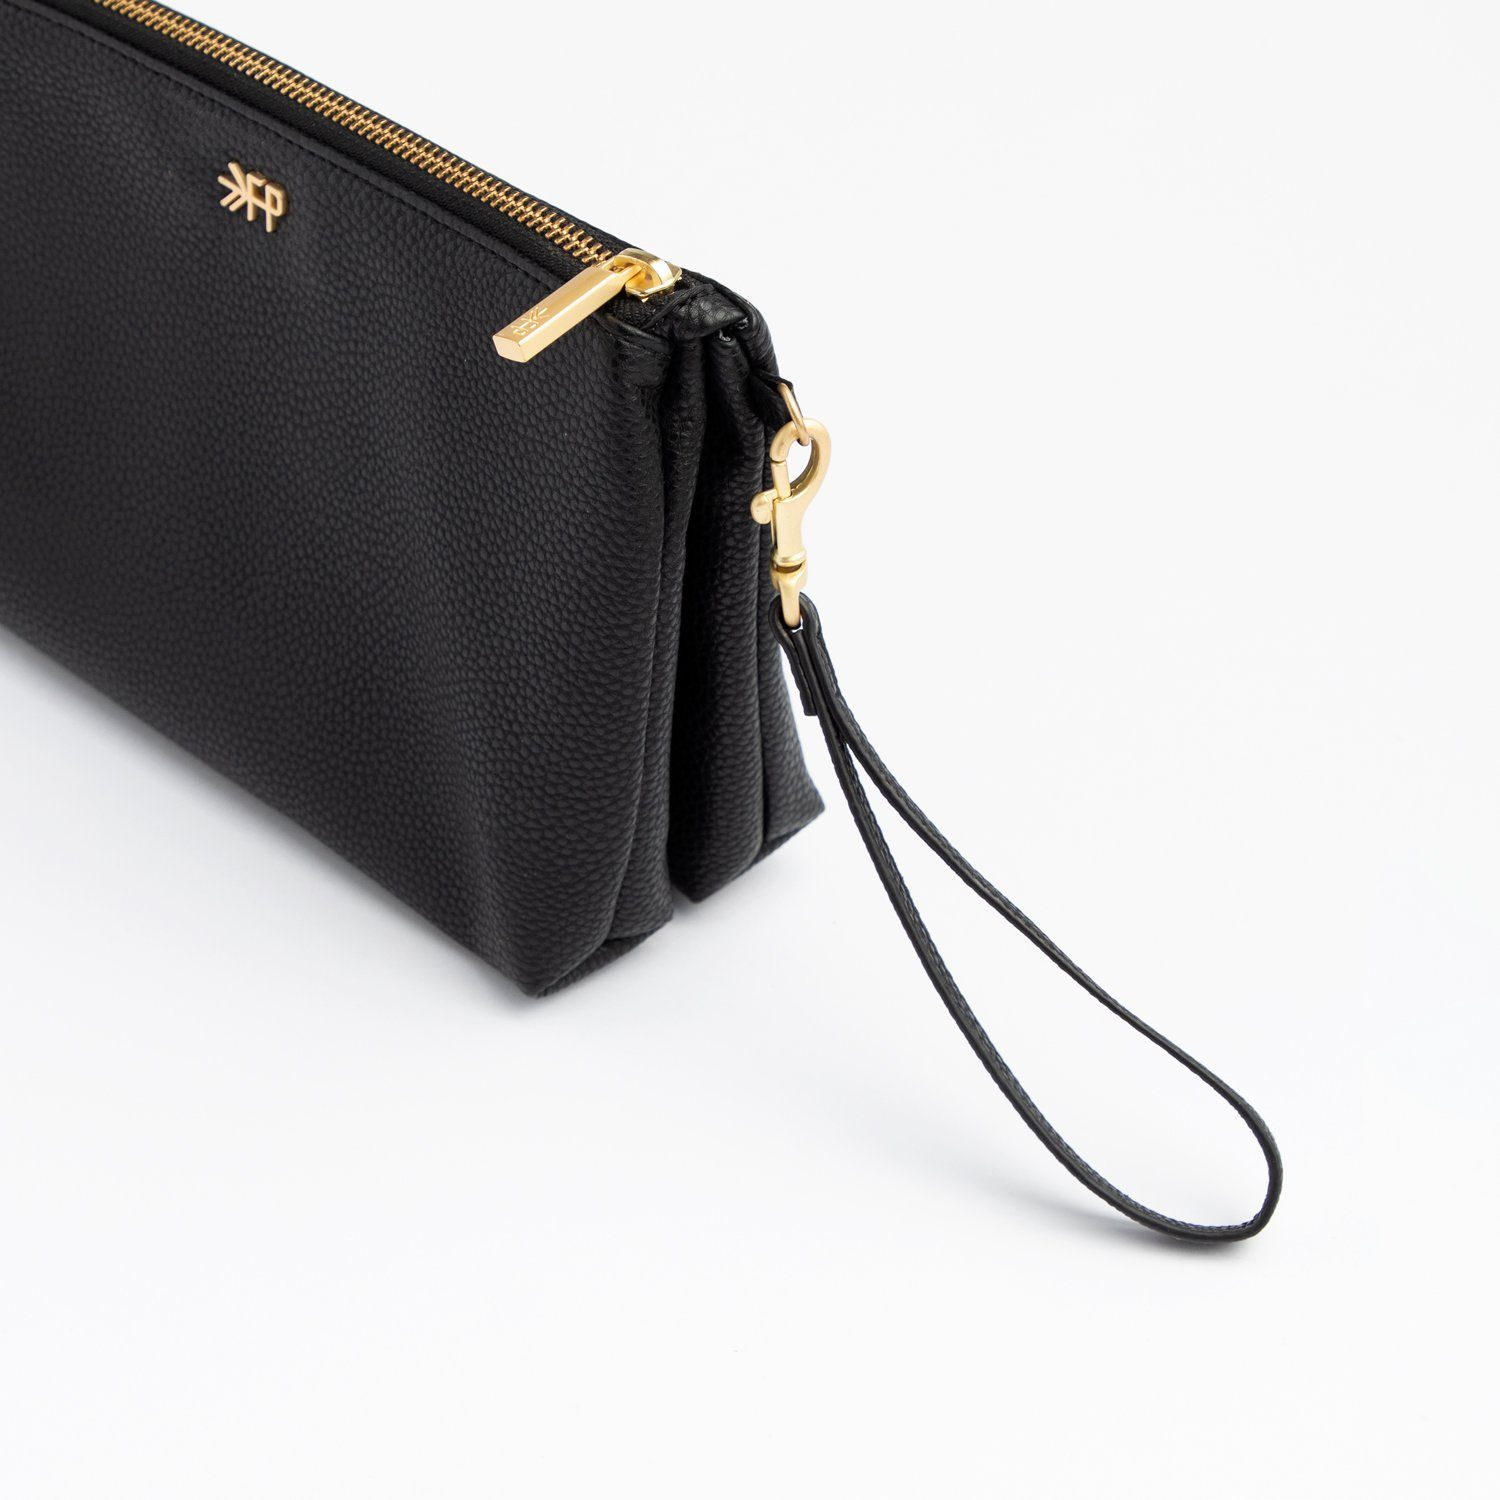 Ebony Classic Zip Pouch Classic Zip Pouch Bags